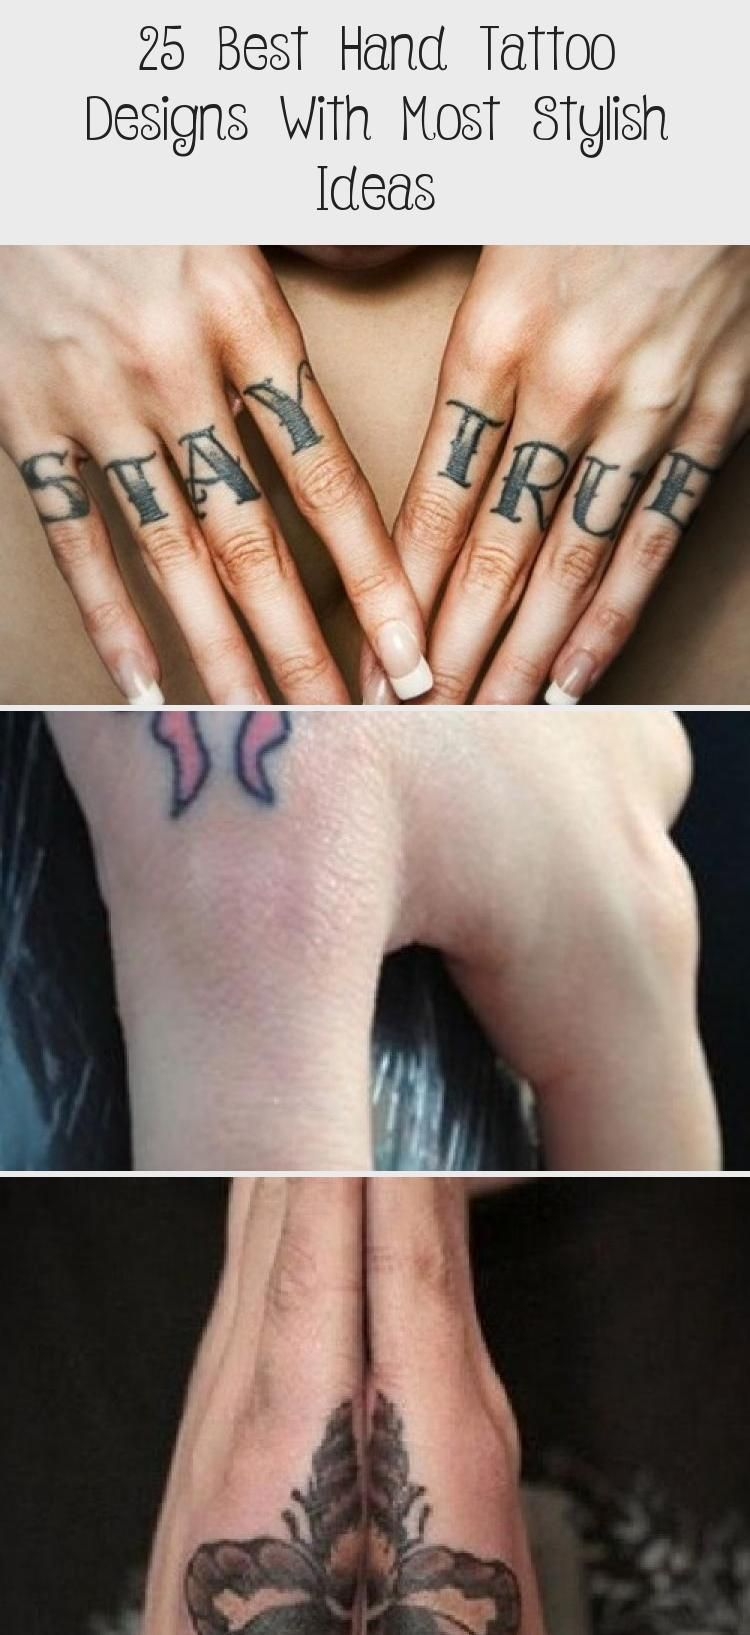 25 Best Hand Tattoo Designs With Most Stylish Ideas Tattoo In 2020 Cute Hand Tattoos Simple Hand Tattoos Stylish Tattoo